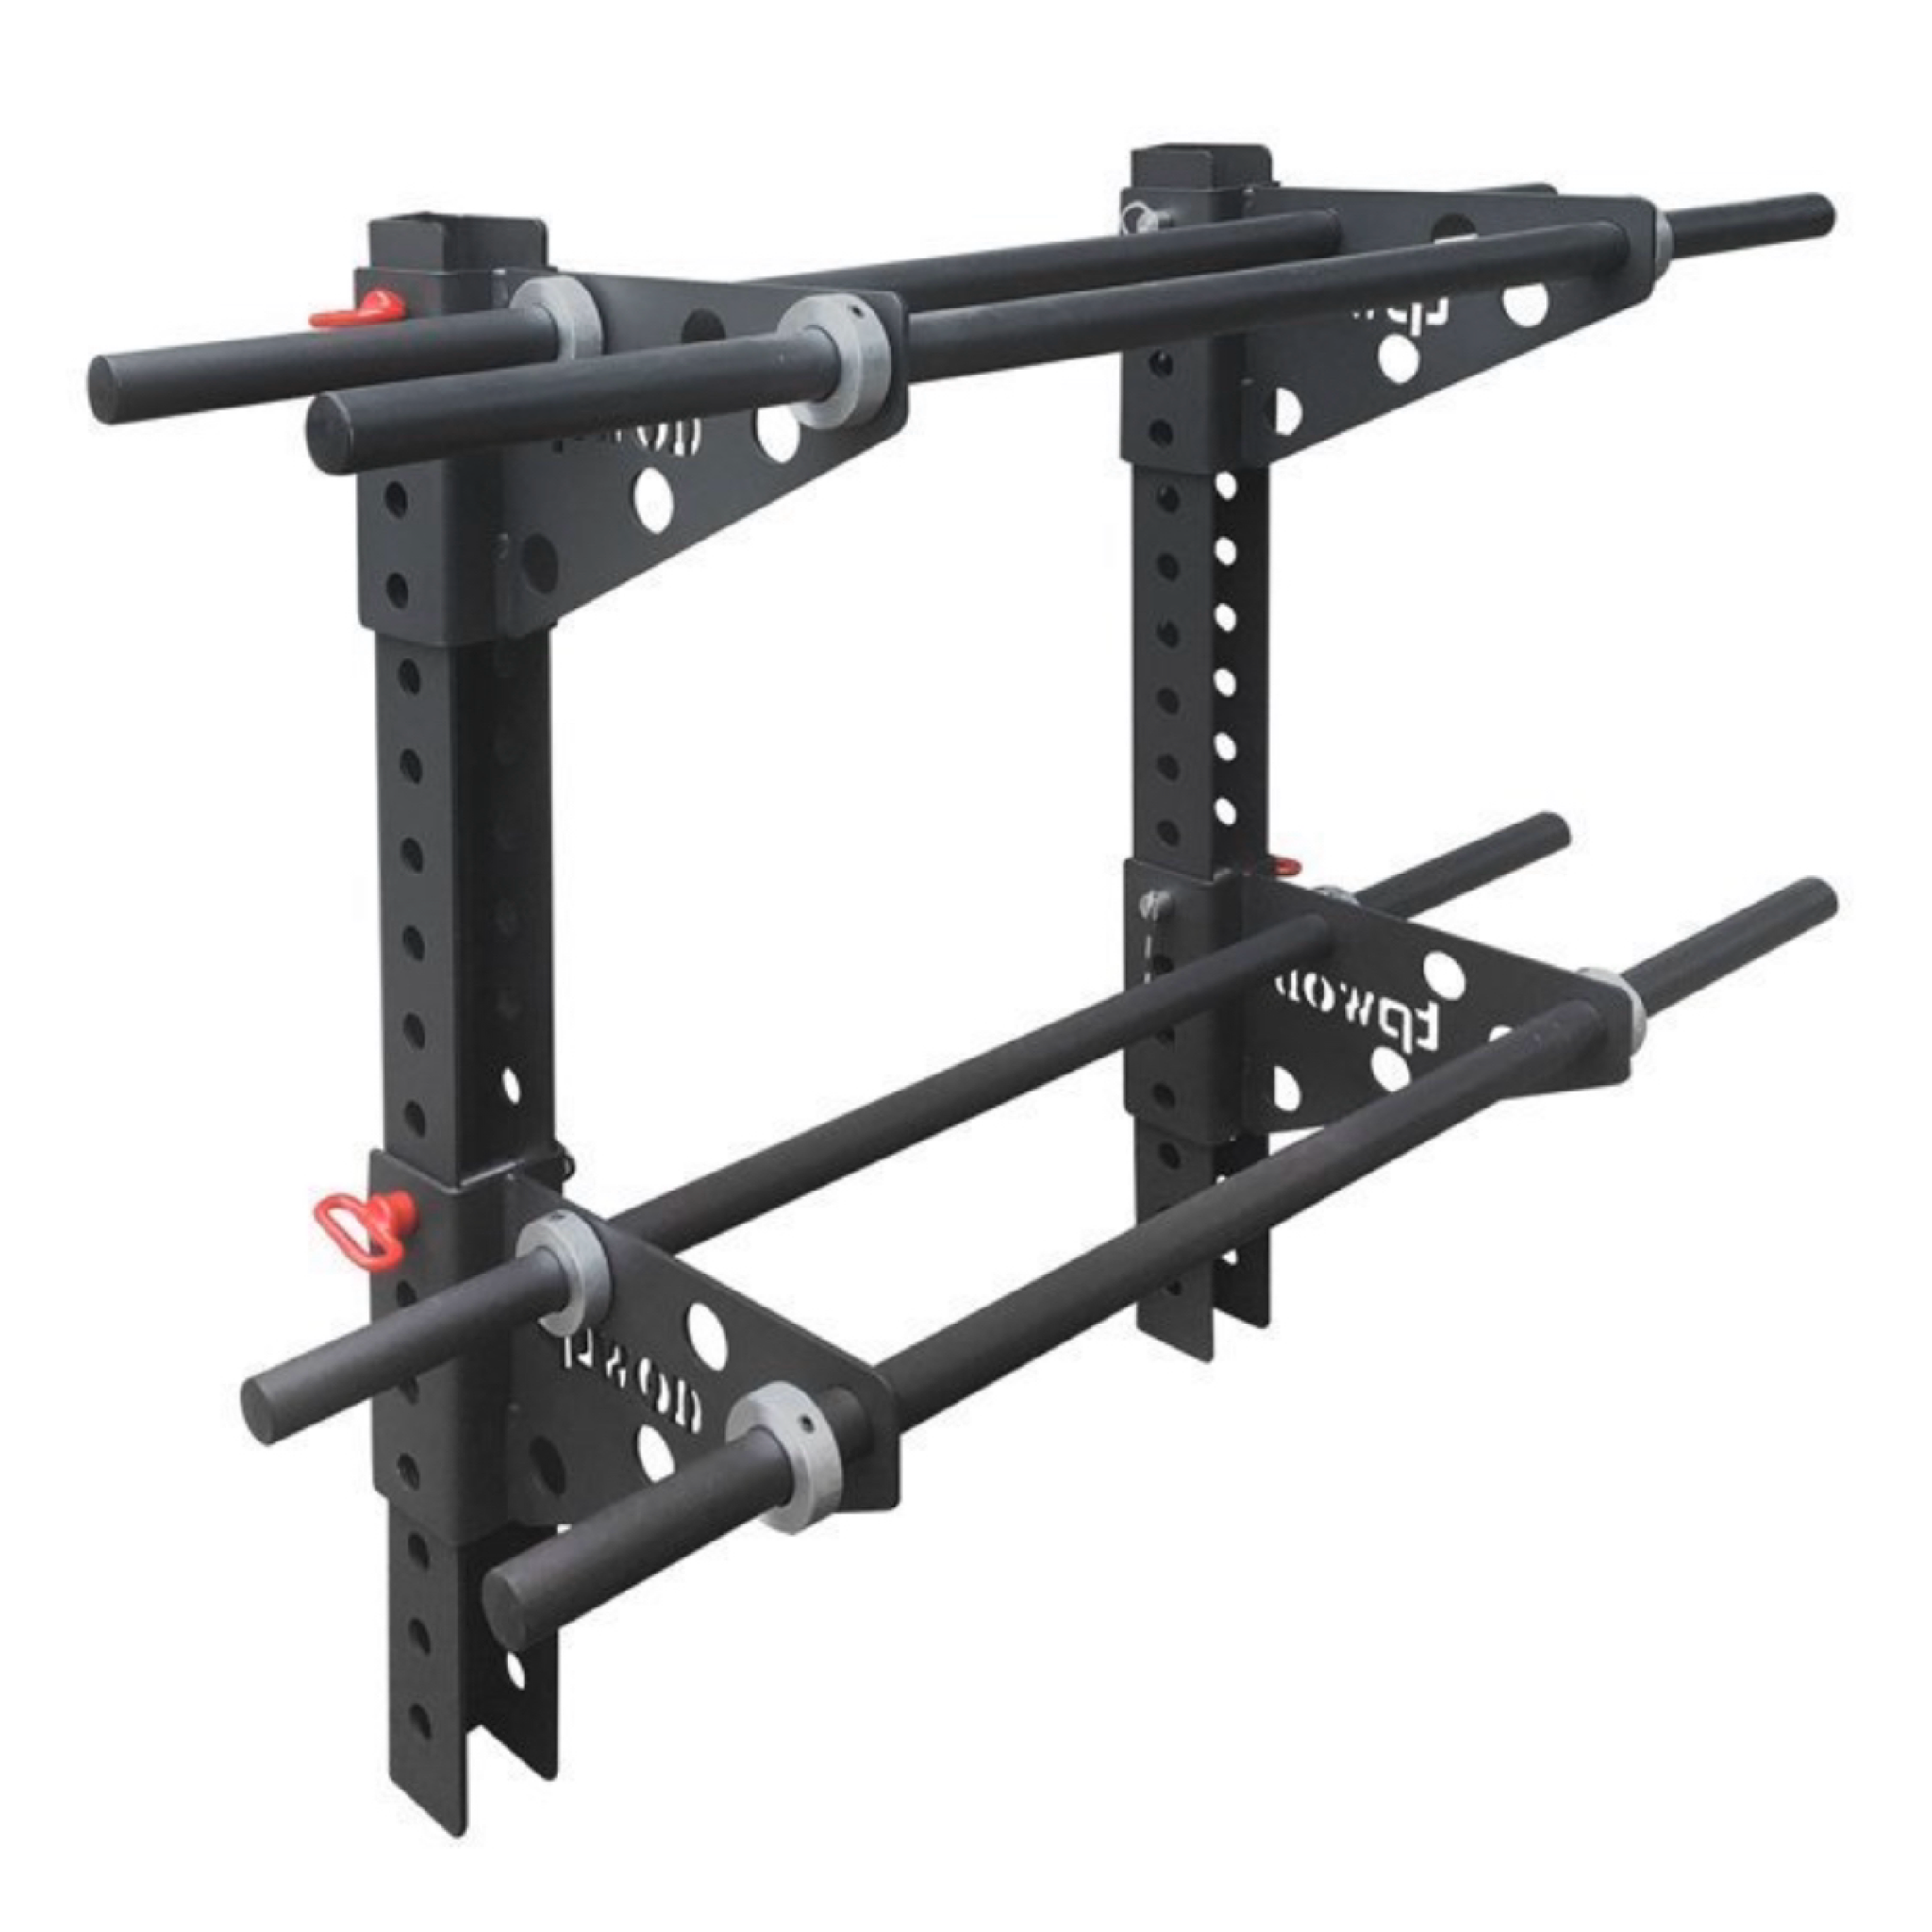 Wall Ball  Rack - Fits 6 wall balls - Great Lakes Strength Manufacturing